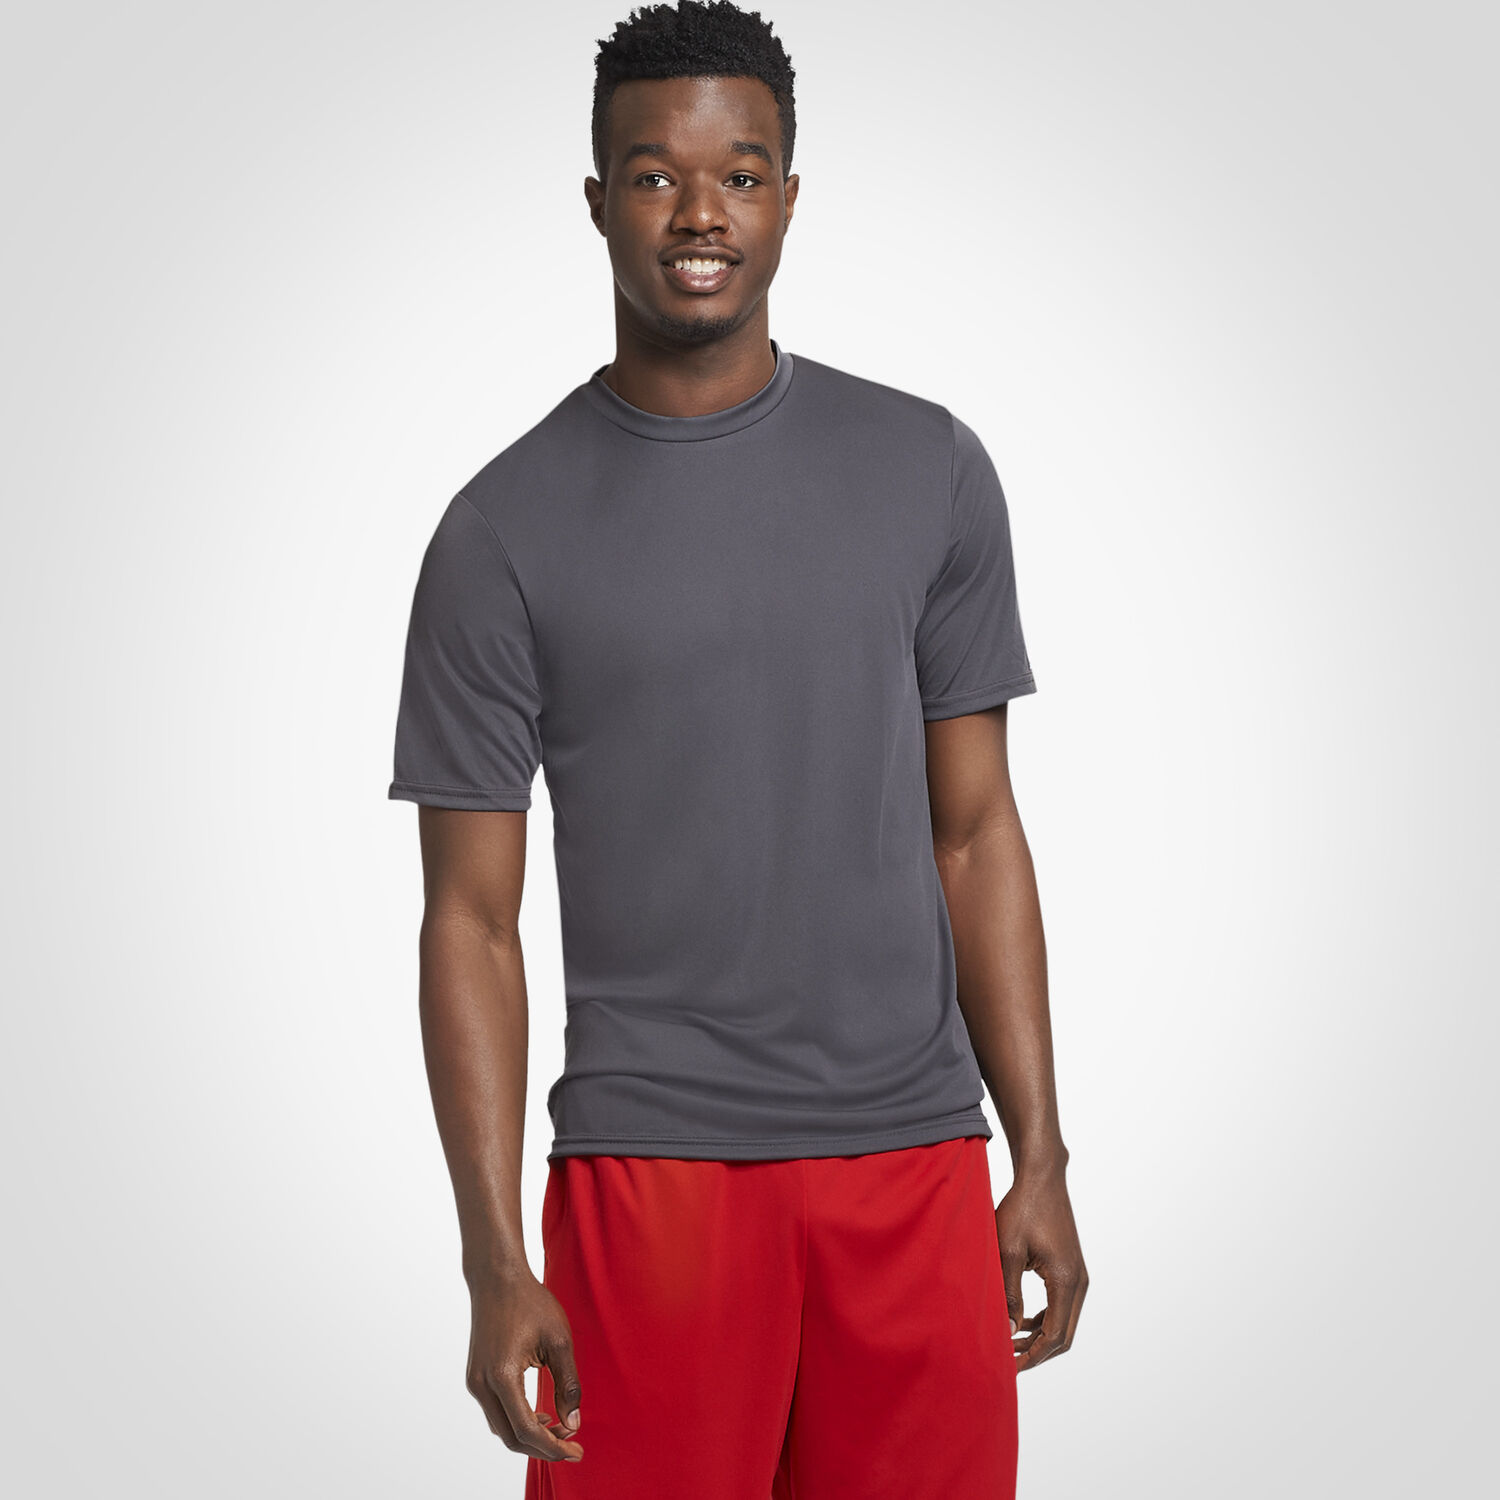 e8b9f5fe00e Men's Dri-Power® Core Performance Tee - Russell US